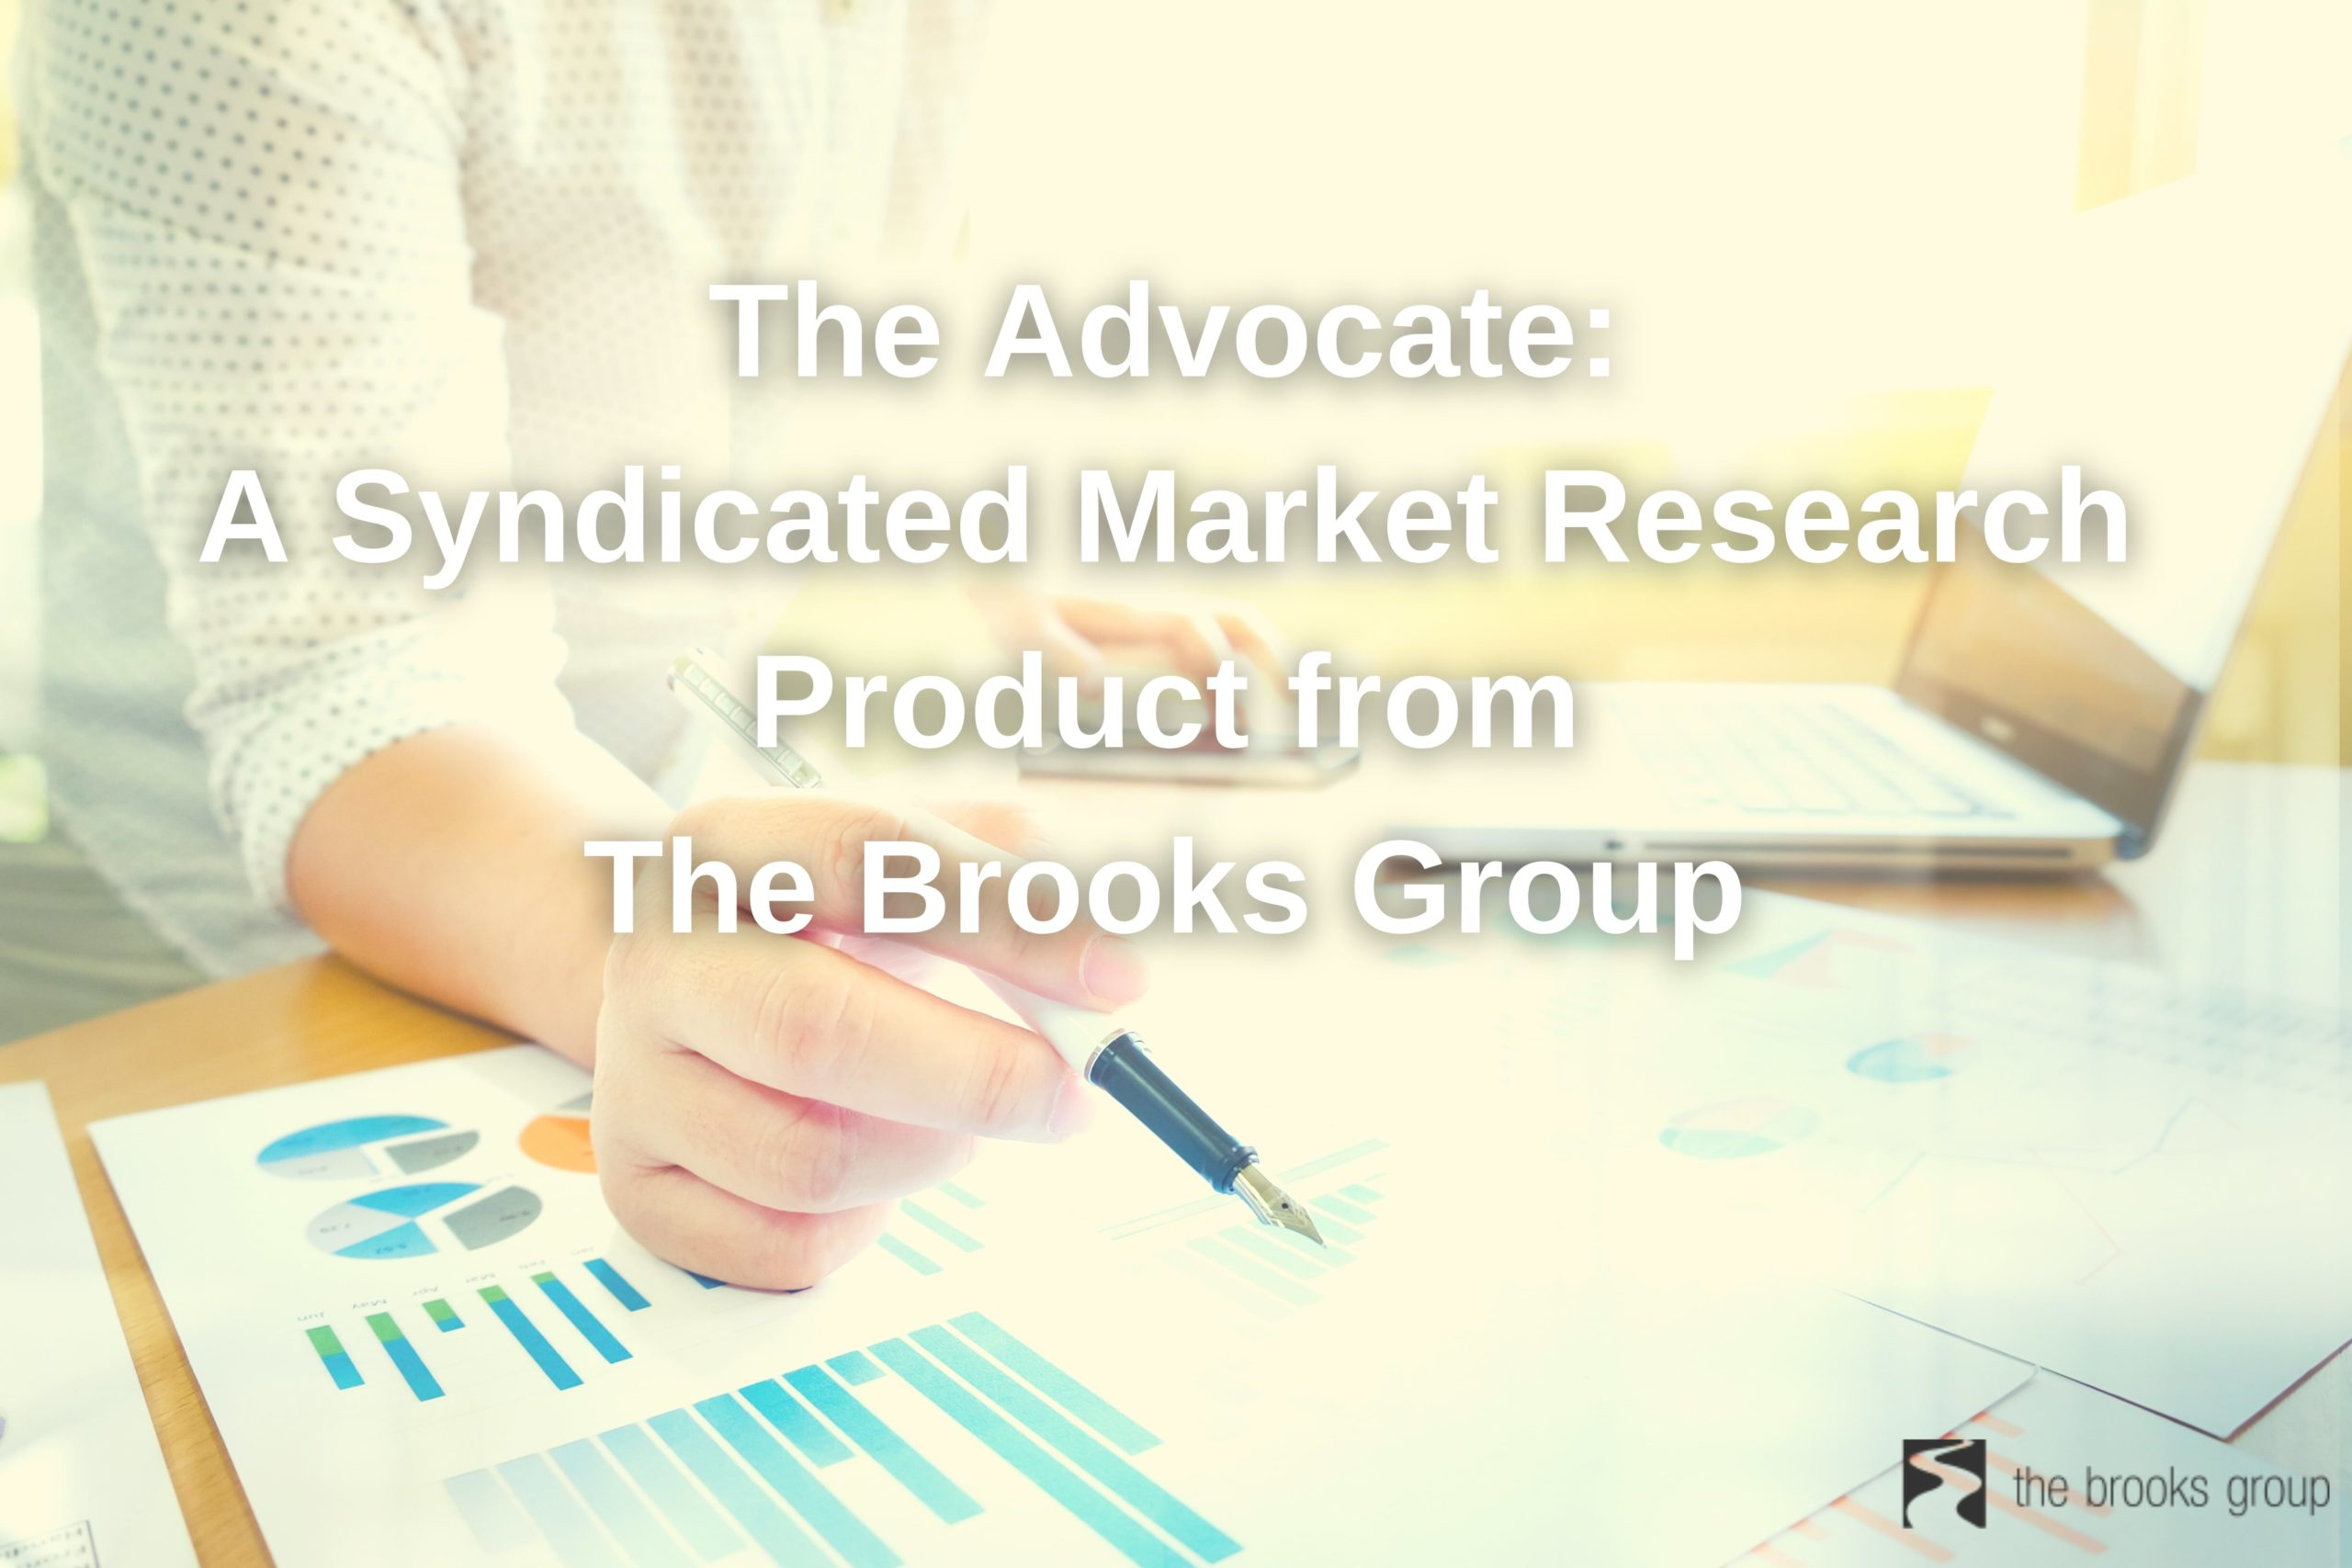 Syndicated Healthcare Market Research and The Advocate